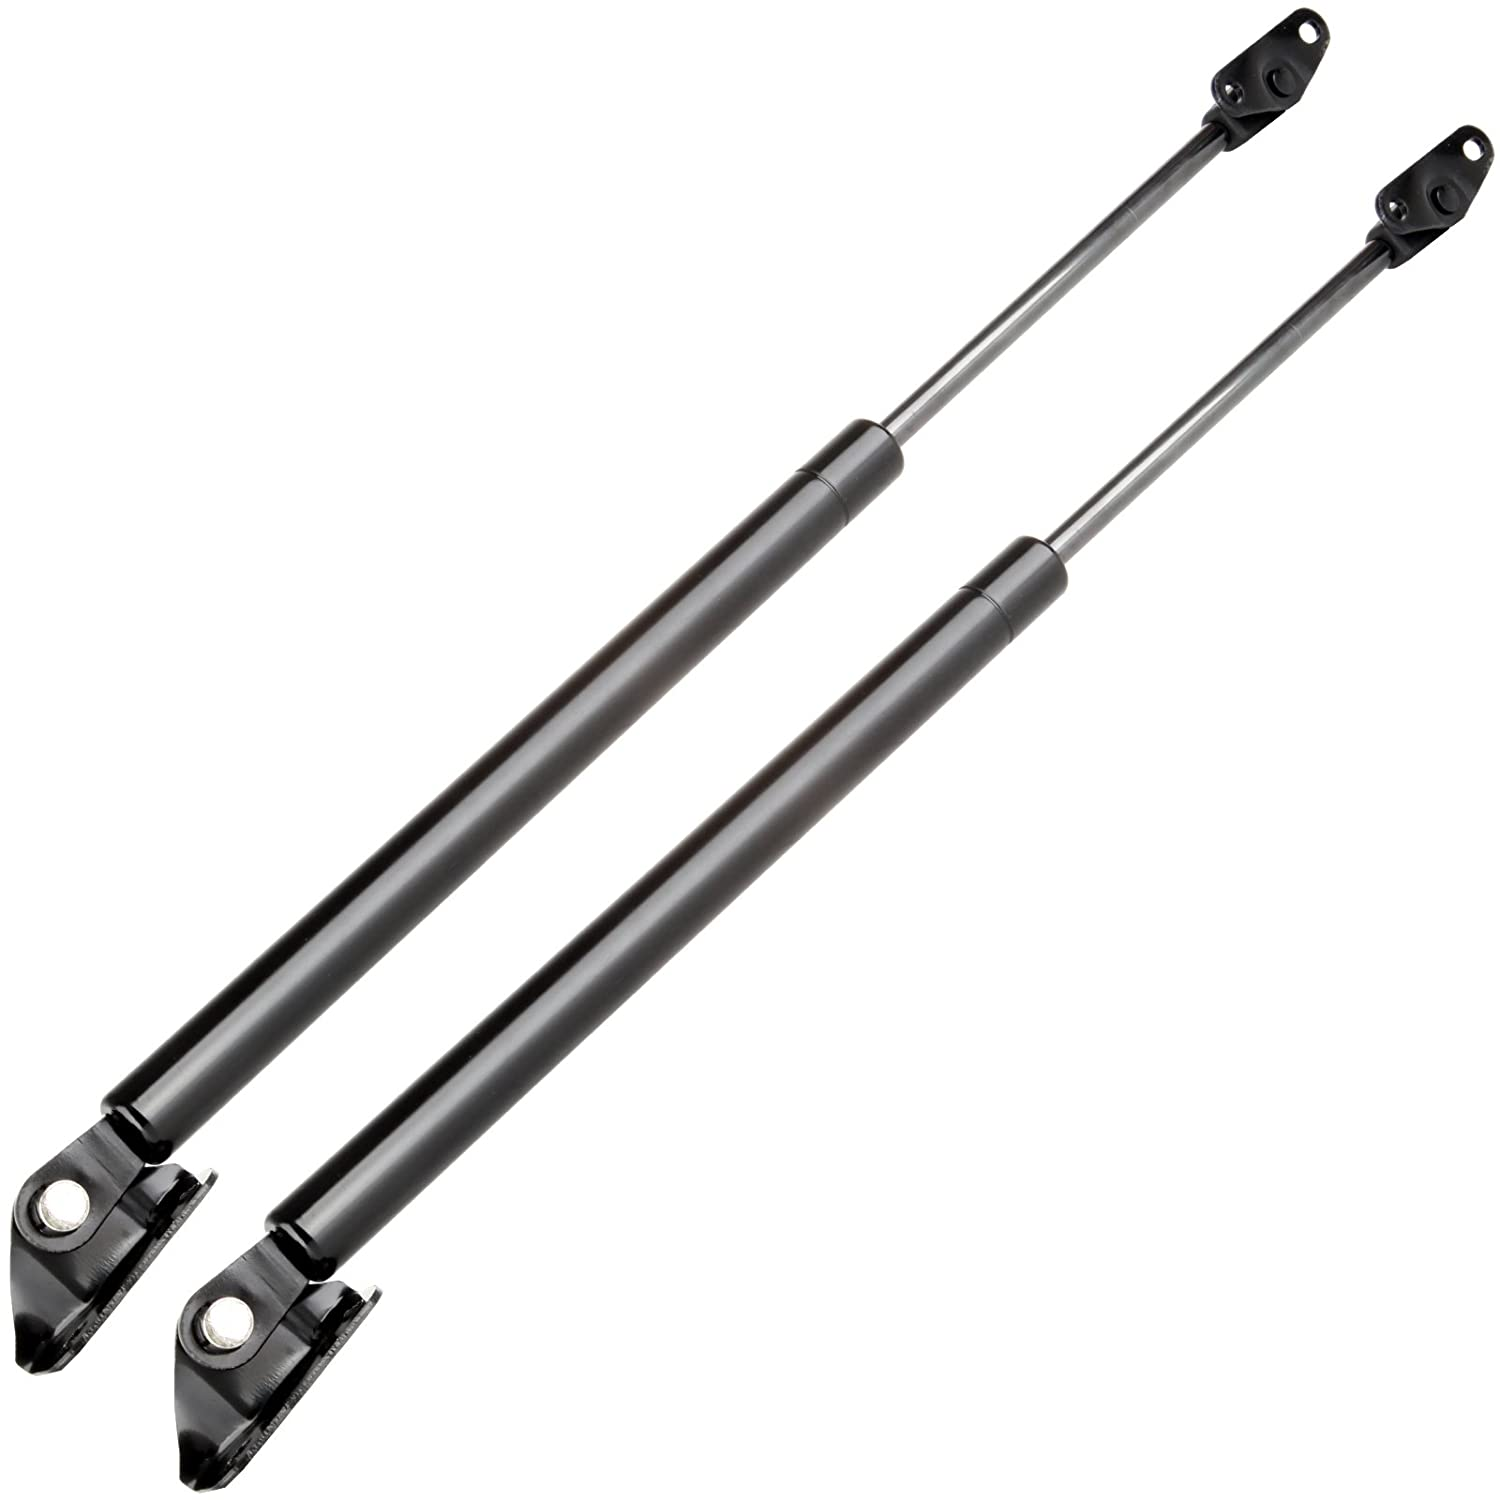 cciyu 2 Rear 6102 Liftgate Hatch Gas Charged Lift Supports Struts Shocks Replacement fit for 1999 2000 2001 2002 2003 Lexus RX300